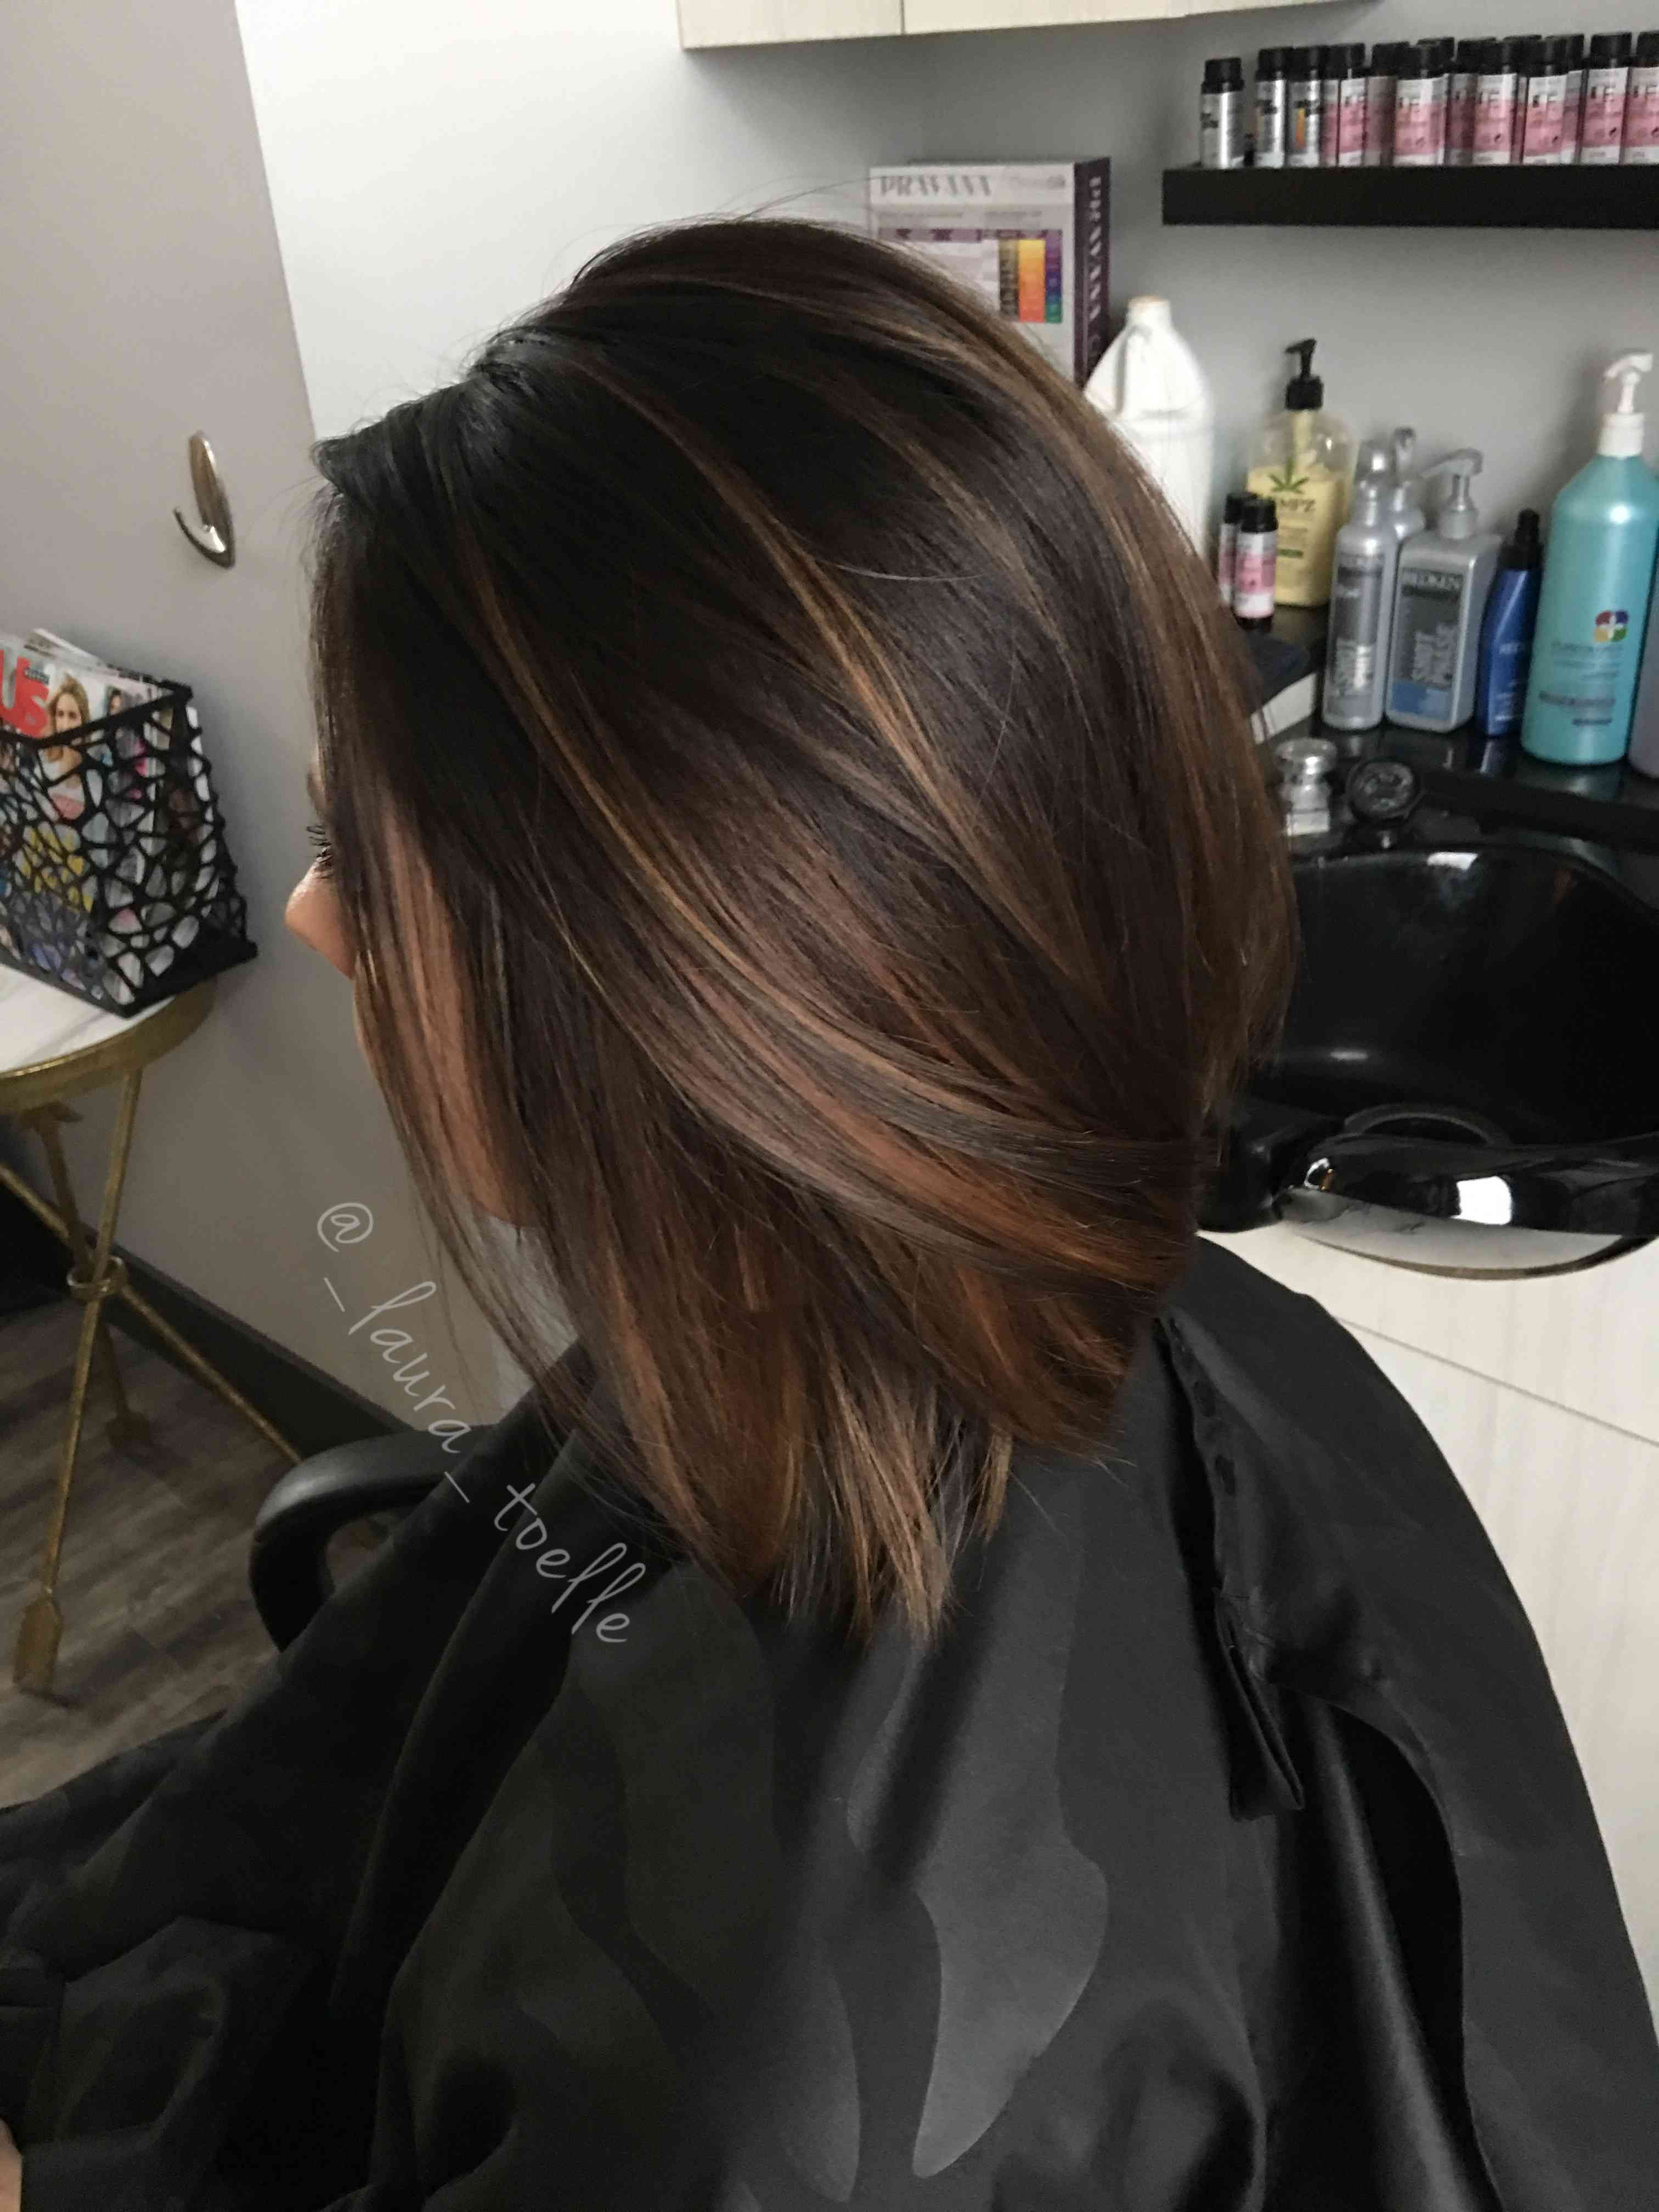 Image Result For Dark Brown Hair With Caramel Highlights Before And